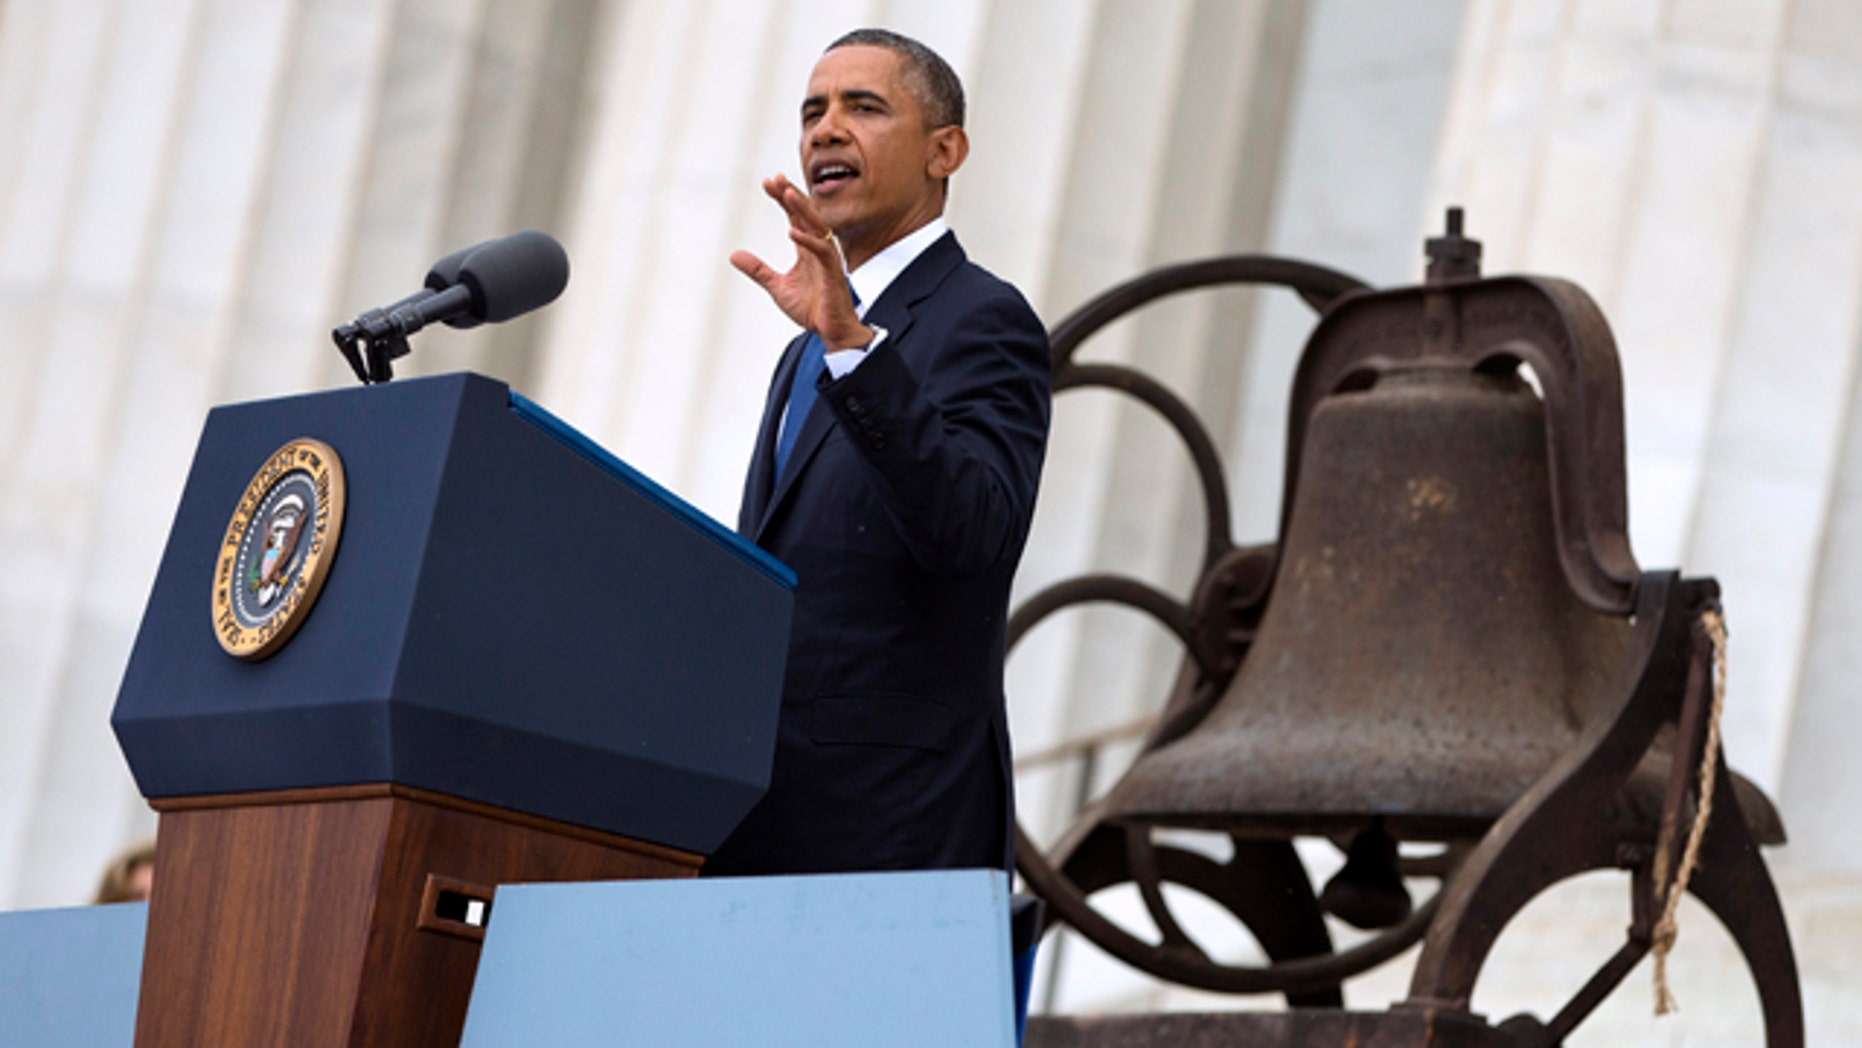 Aug. 28, 2013: Obama gestures while speaking at a ceremony commemorating the 50th anniversary of the March on Washington.